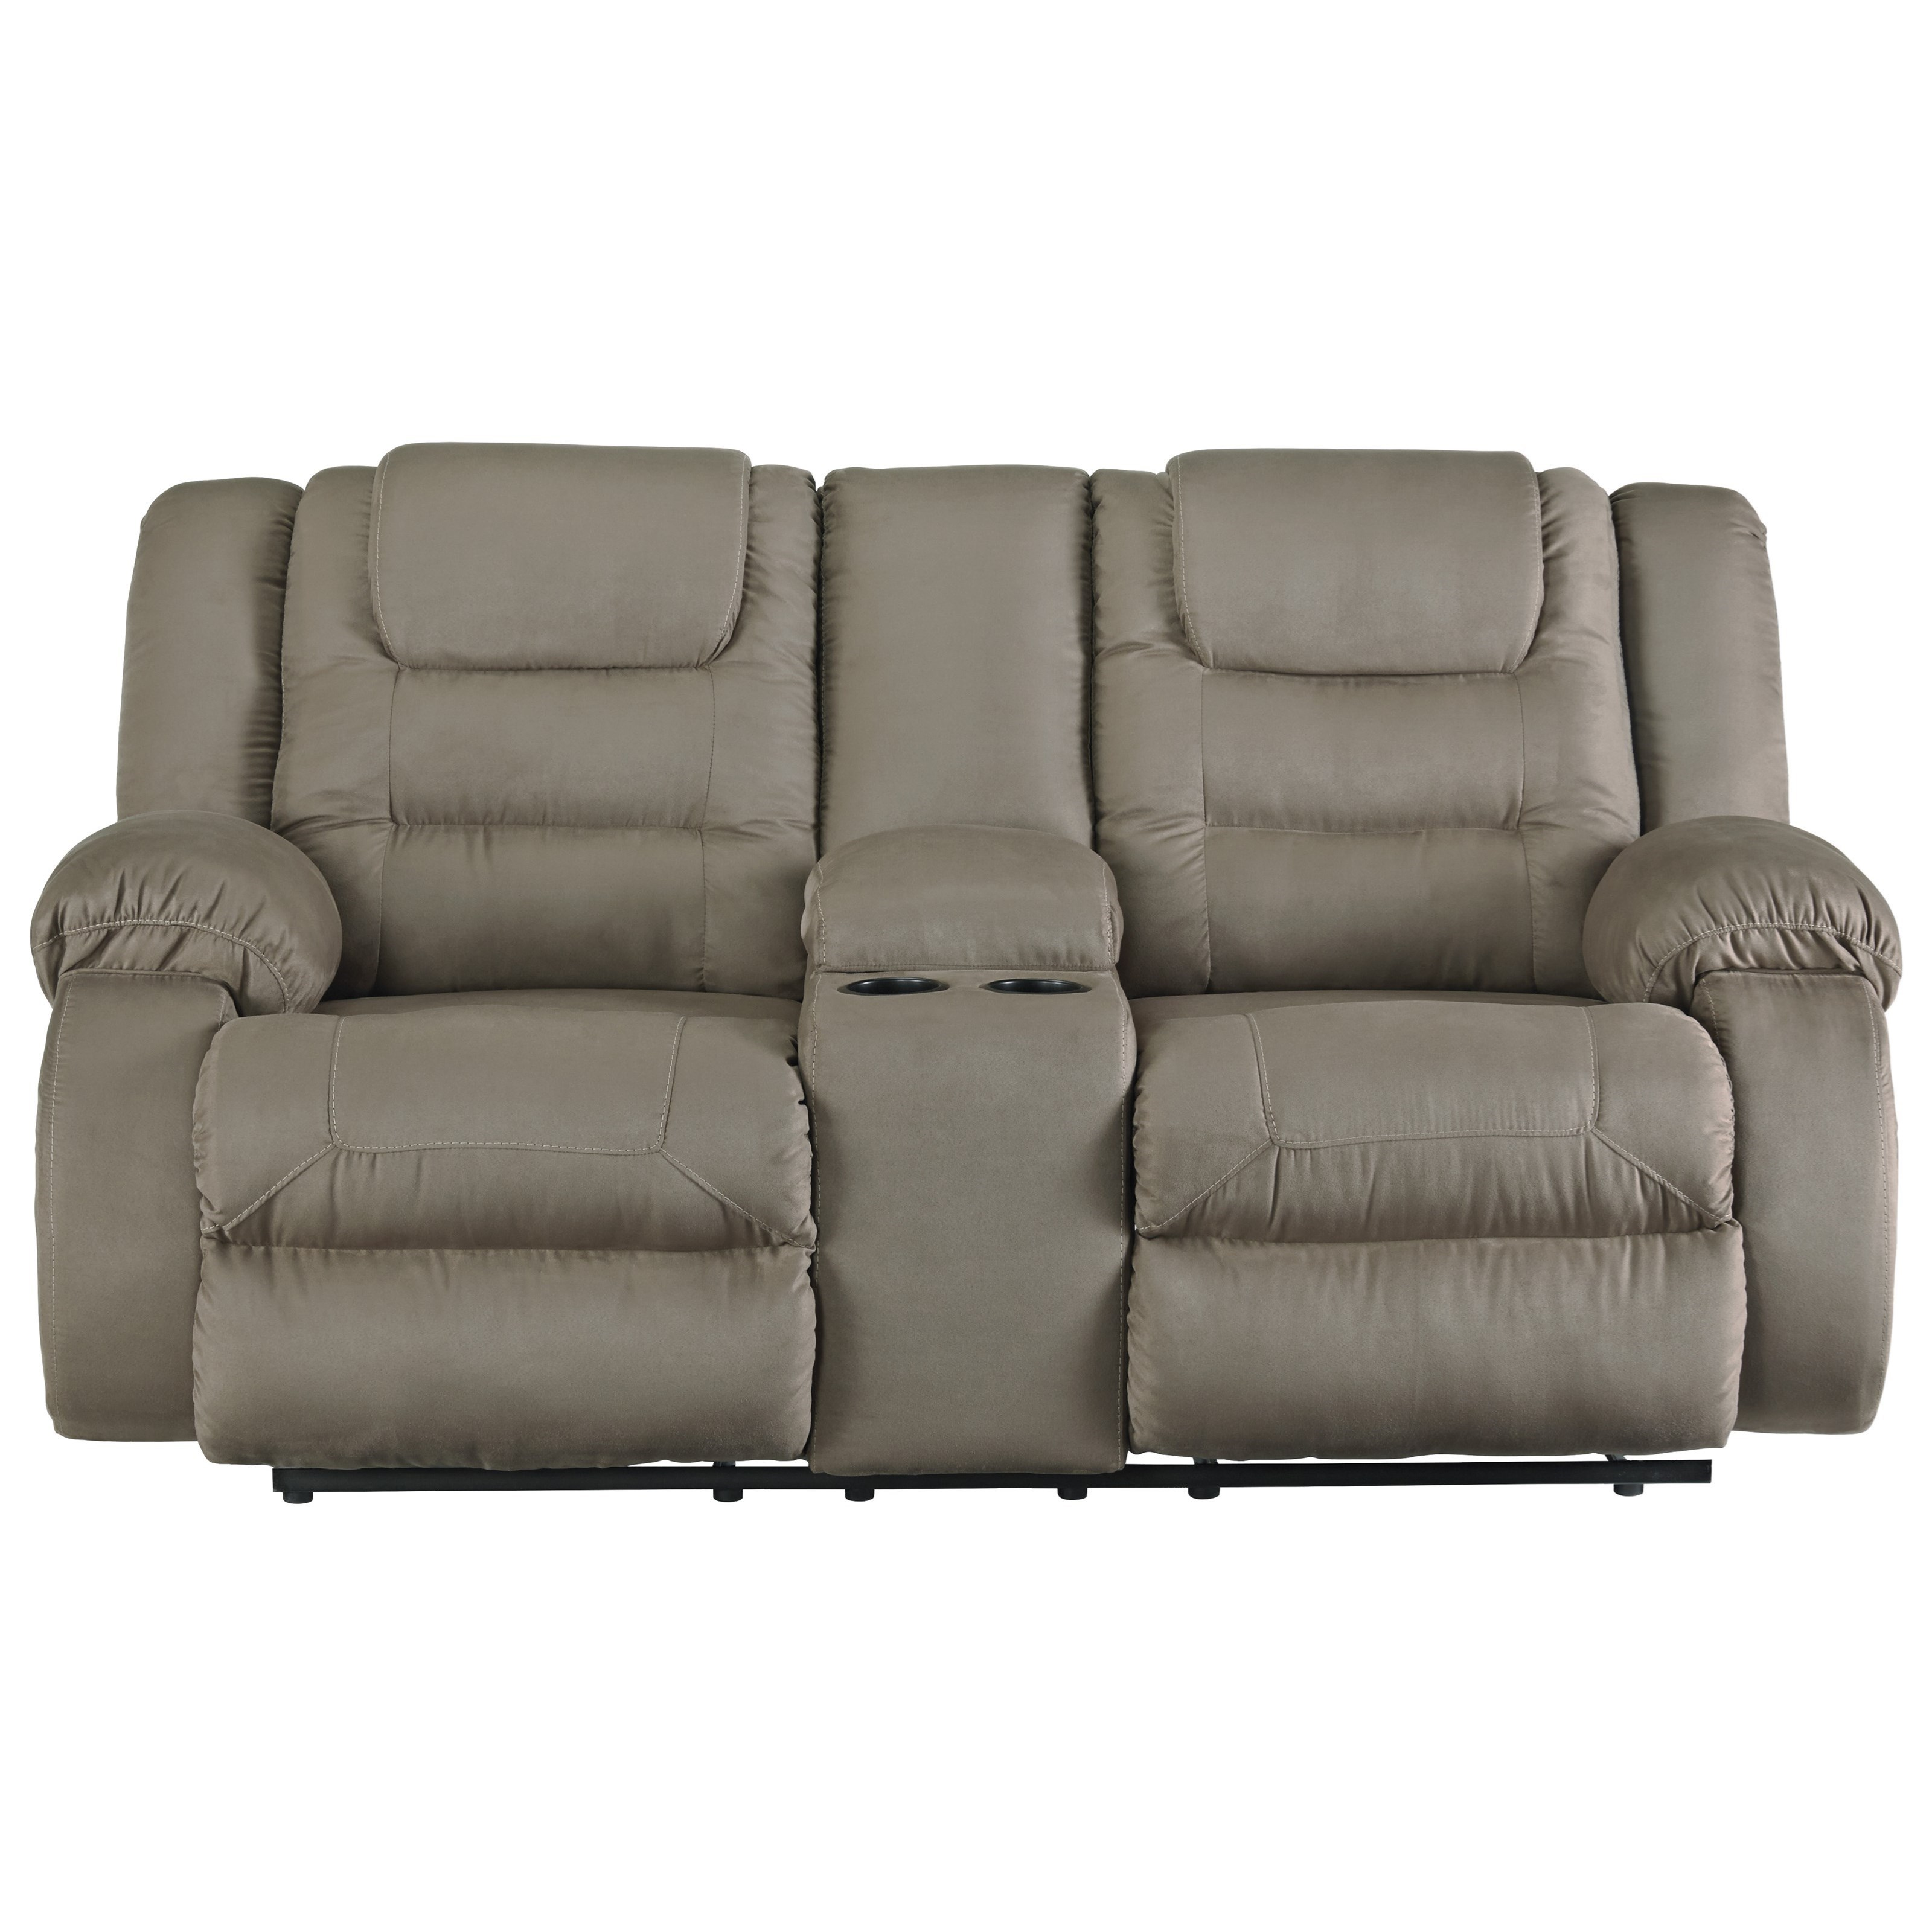 McCade Double Reclining Loveseat with Console by Signature Design by Ashley at Houston's Yuma Furniture